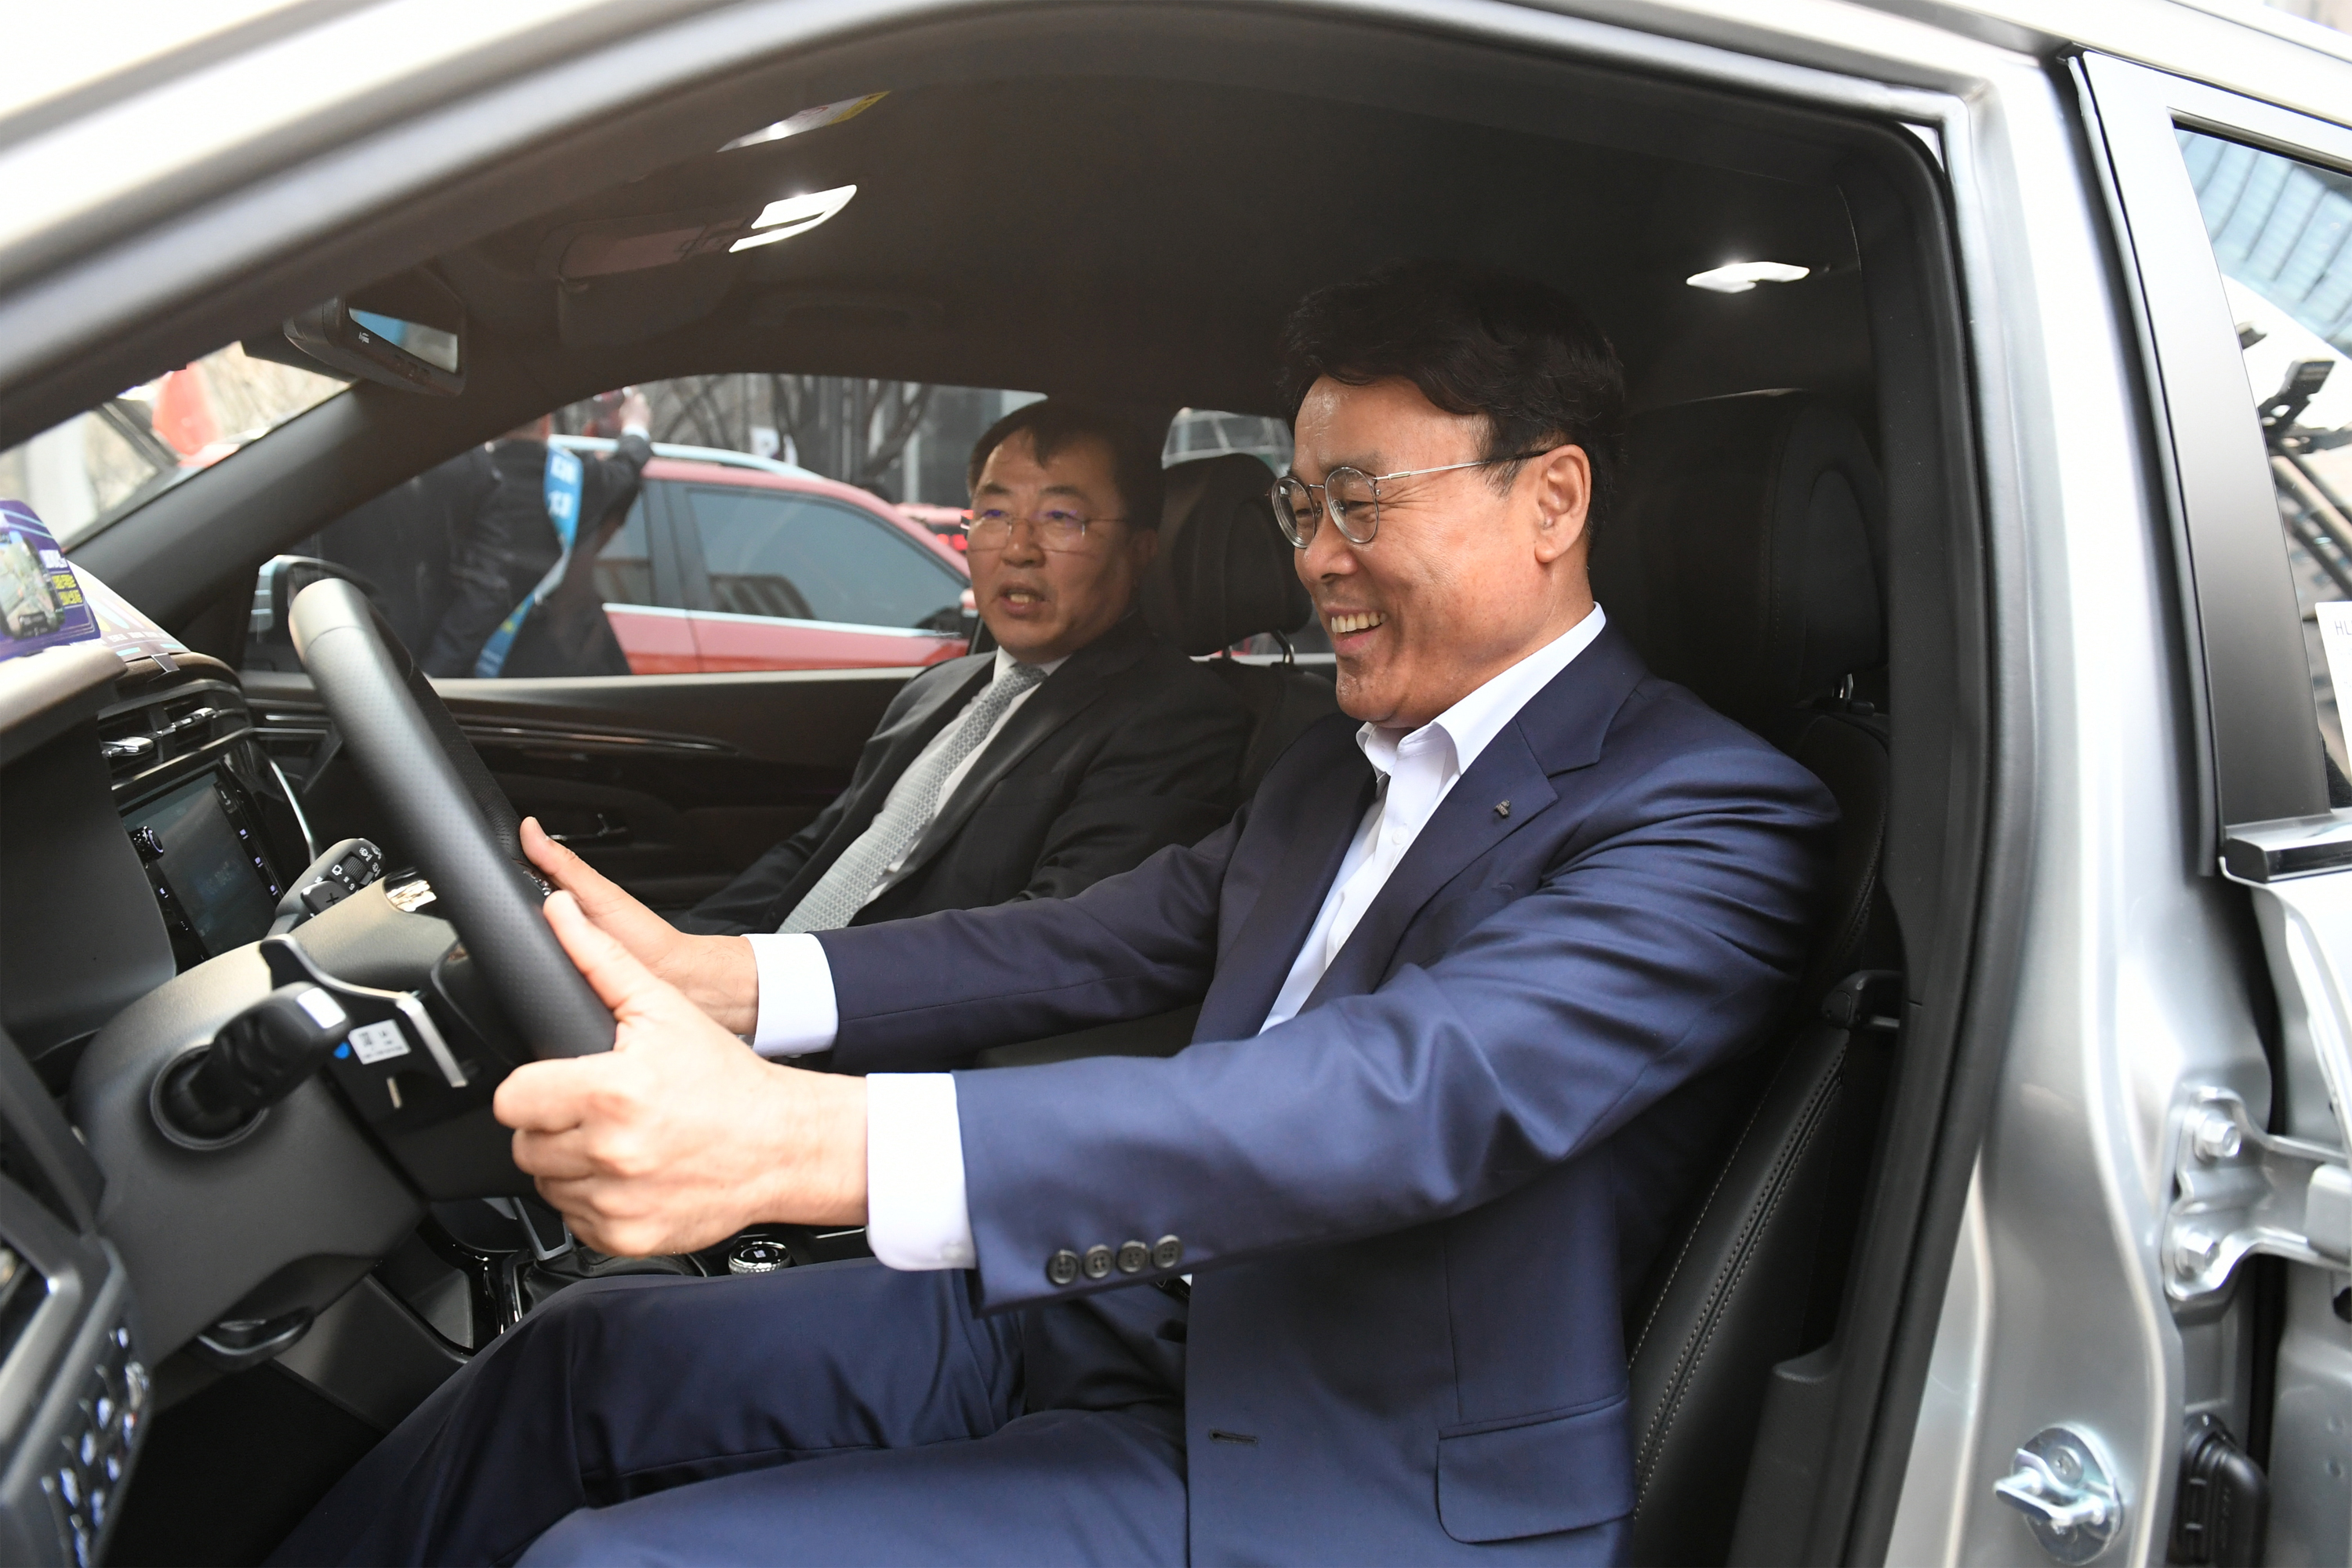 POSCO CEO Jeong-Woo Choi at the test drive event of SsangYong's VIEWtiful Korando, together with the automaker's Vice President Byung-Tae Yea